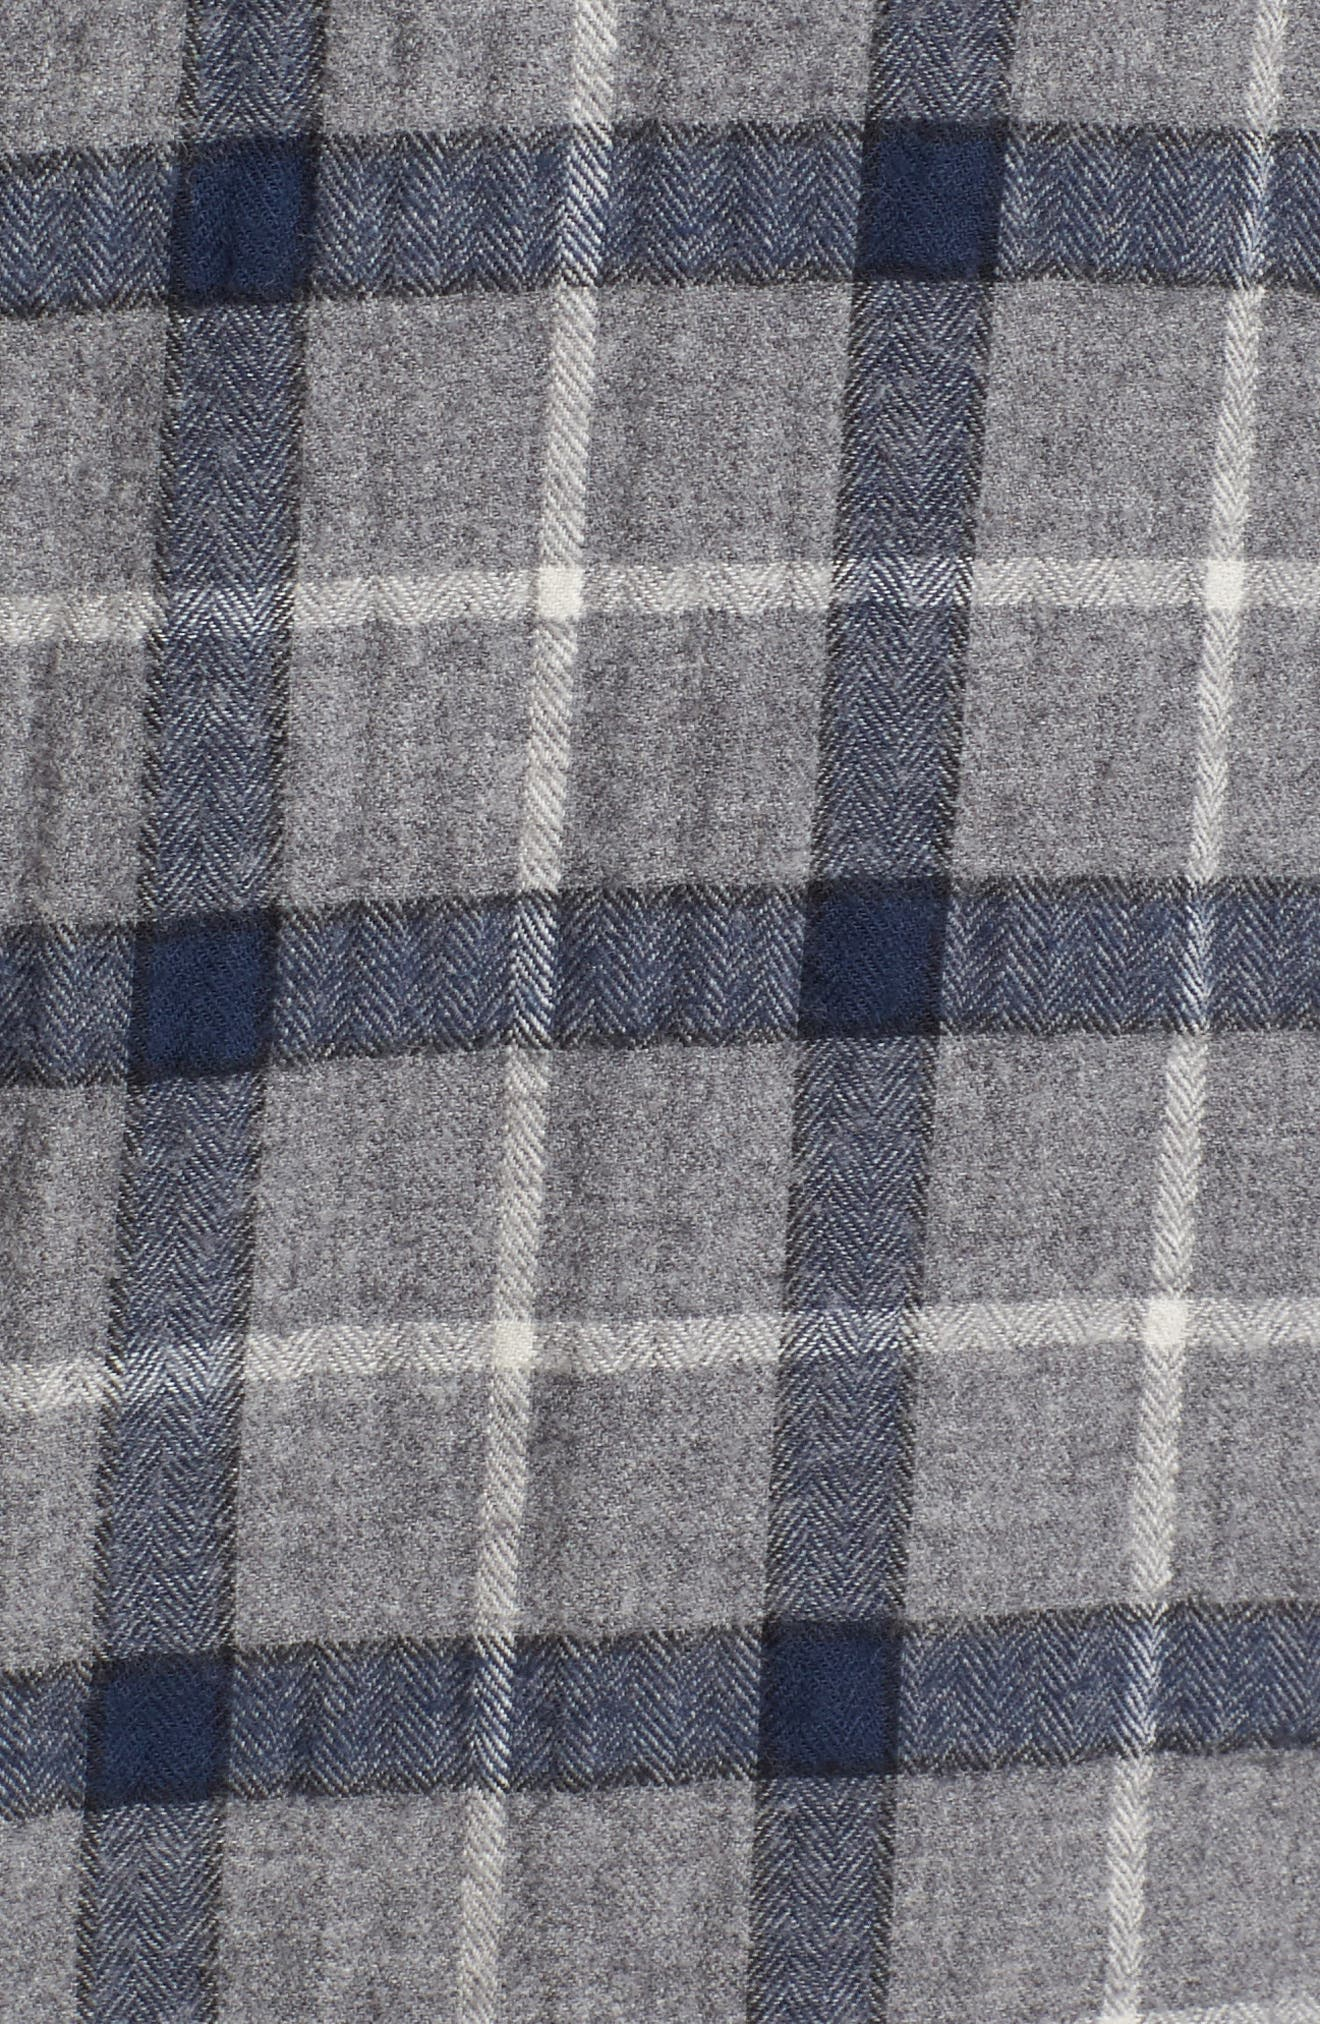 Murphy Slim Fit Plaid Sport Shirt,                             Alternate thumbnail 5, color,                             Grey/ Navy